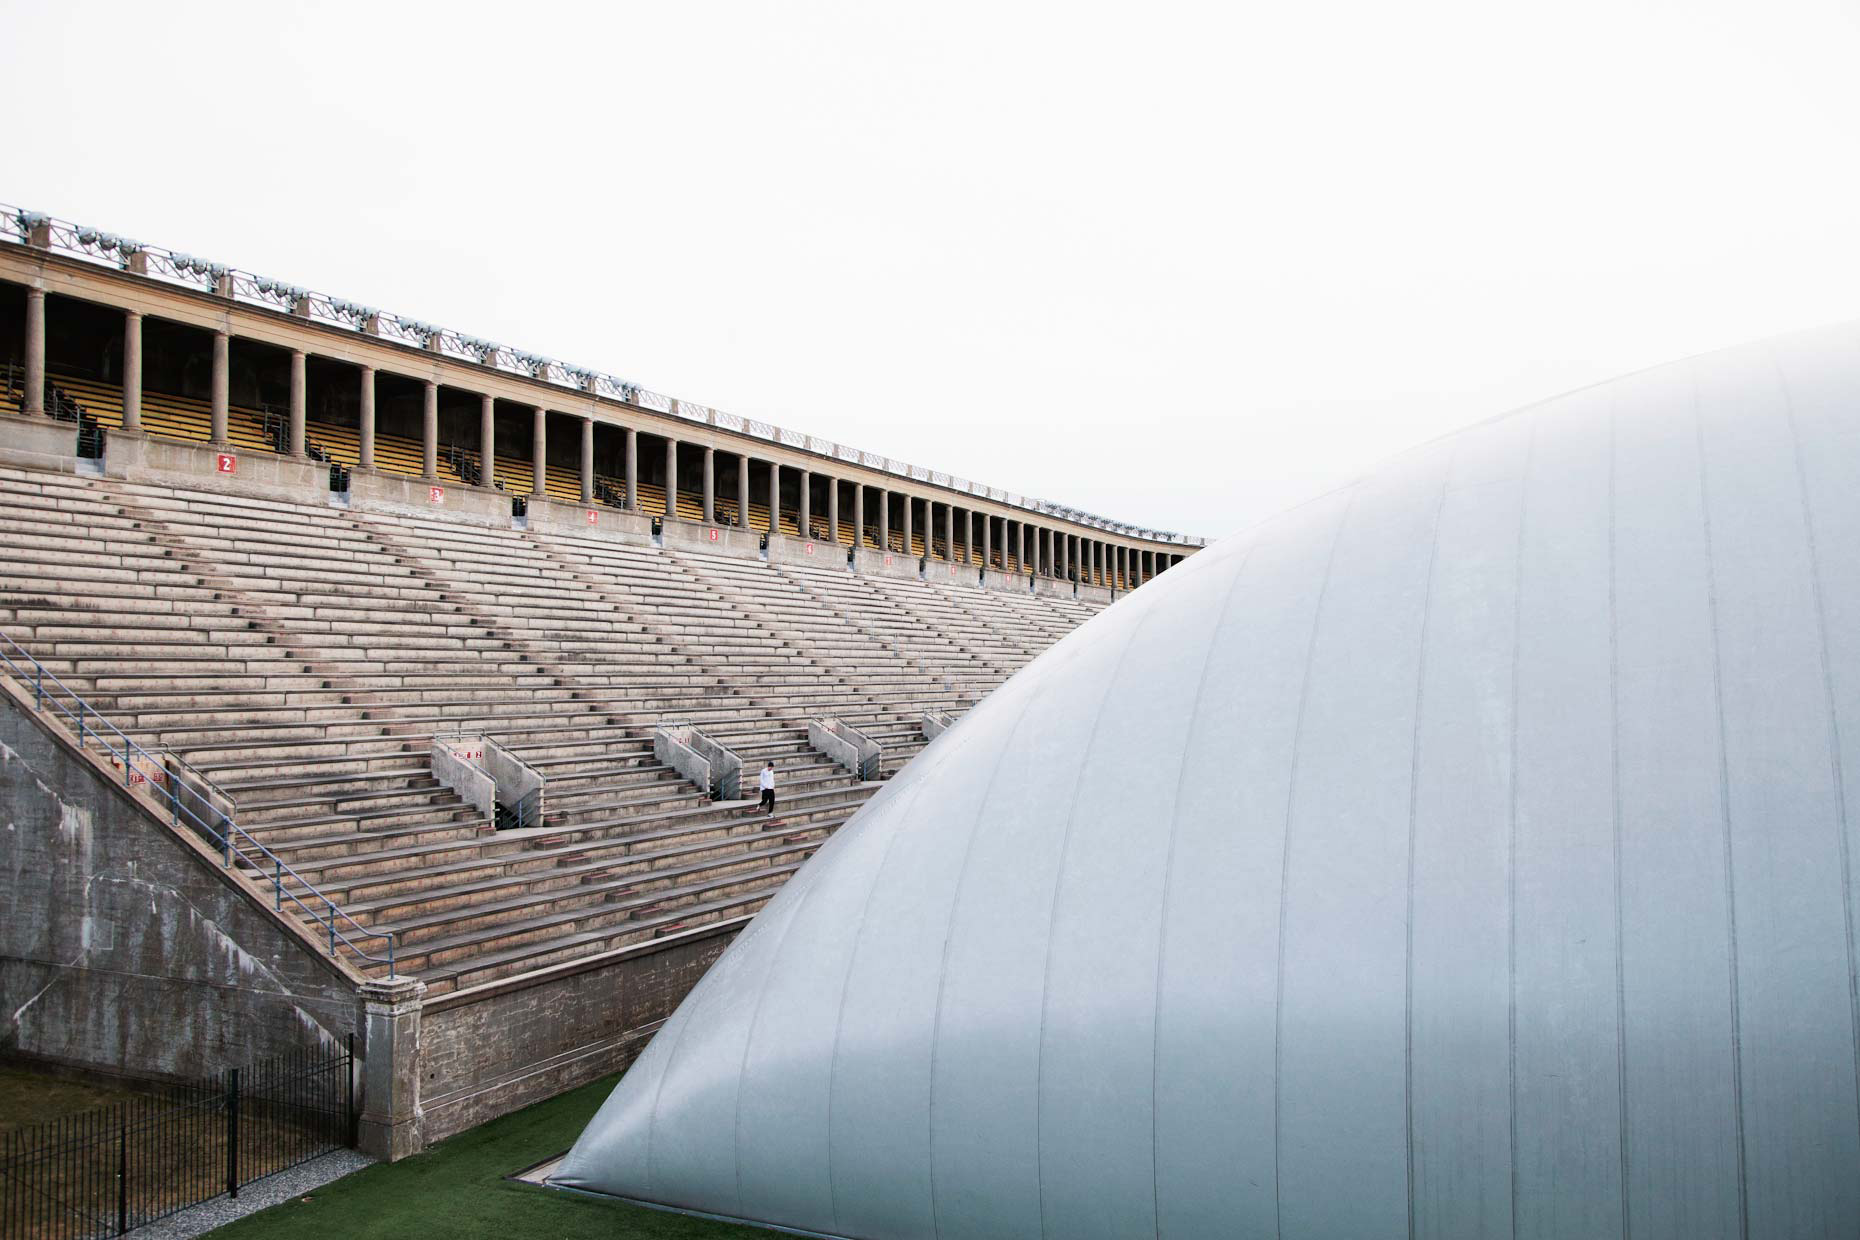 WEB_Harvard_Stadium.jpg